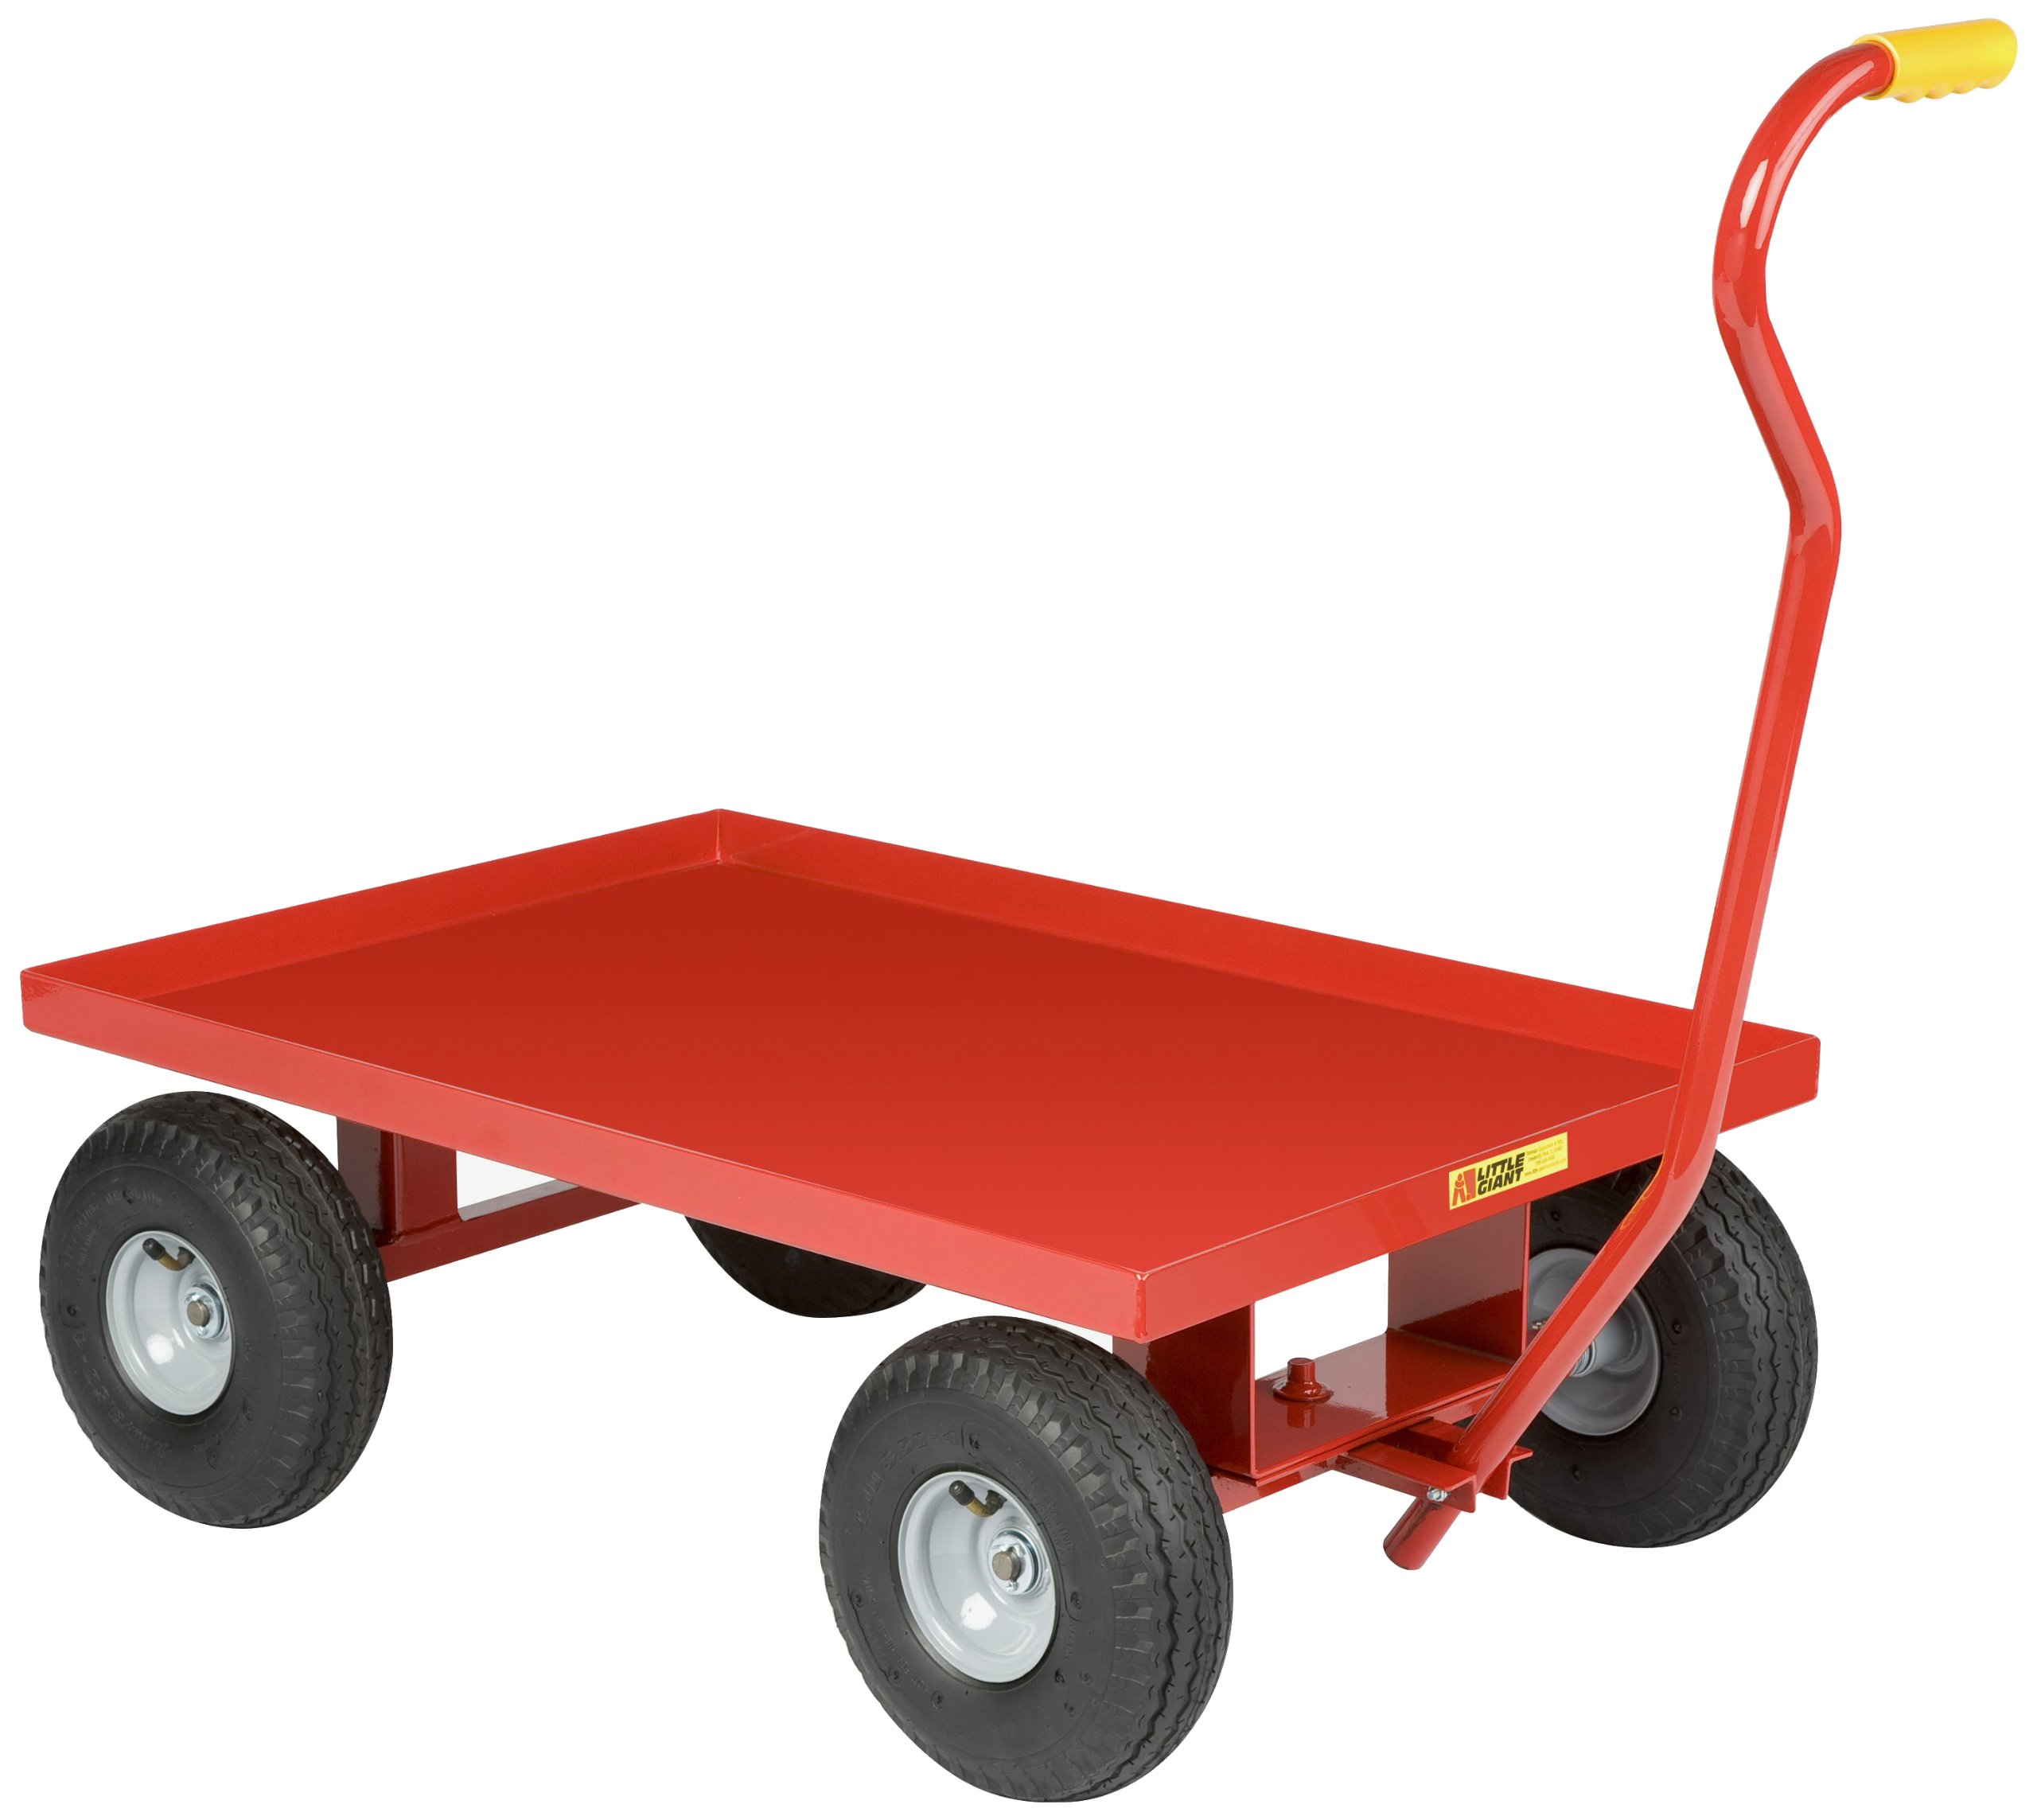 Little Giant LW-2436-8S Steel Solid Deck Wagon Truck with 1-1/2'' Lip, 8'' Solid Rubber Wheel, Red, 1200 lb. Load Capacity, 24'' Width x 36'' Length